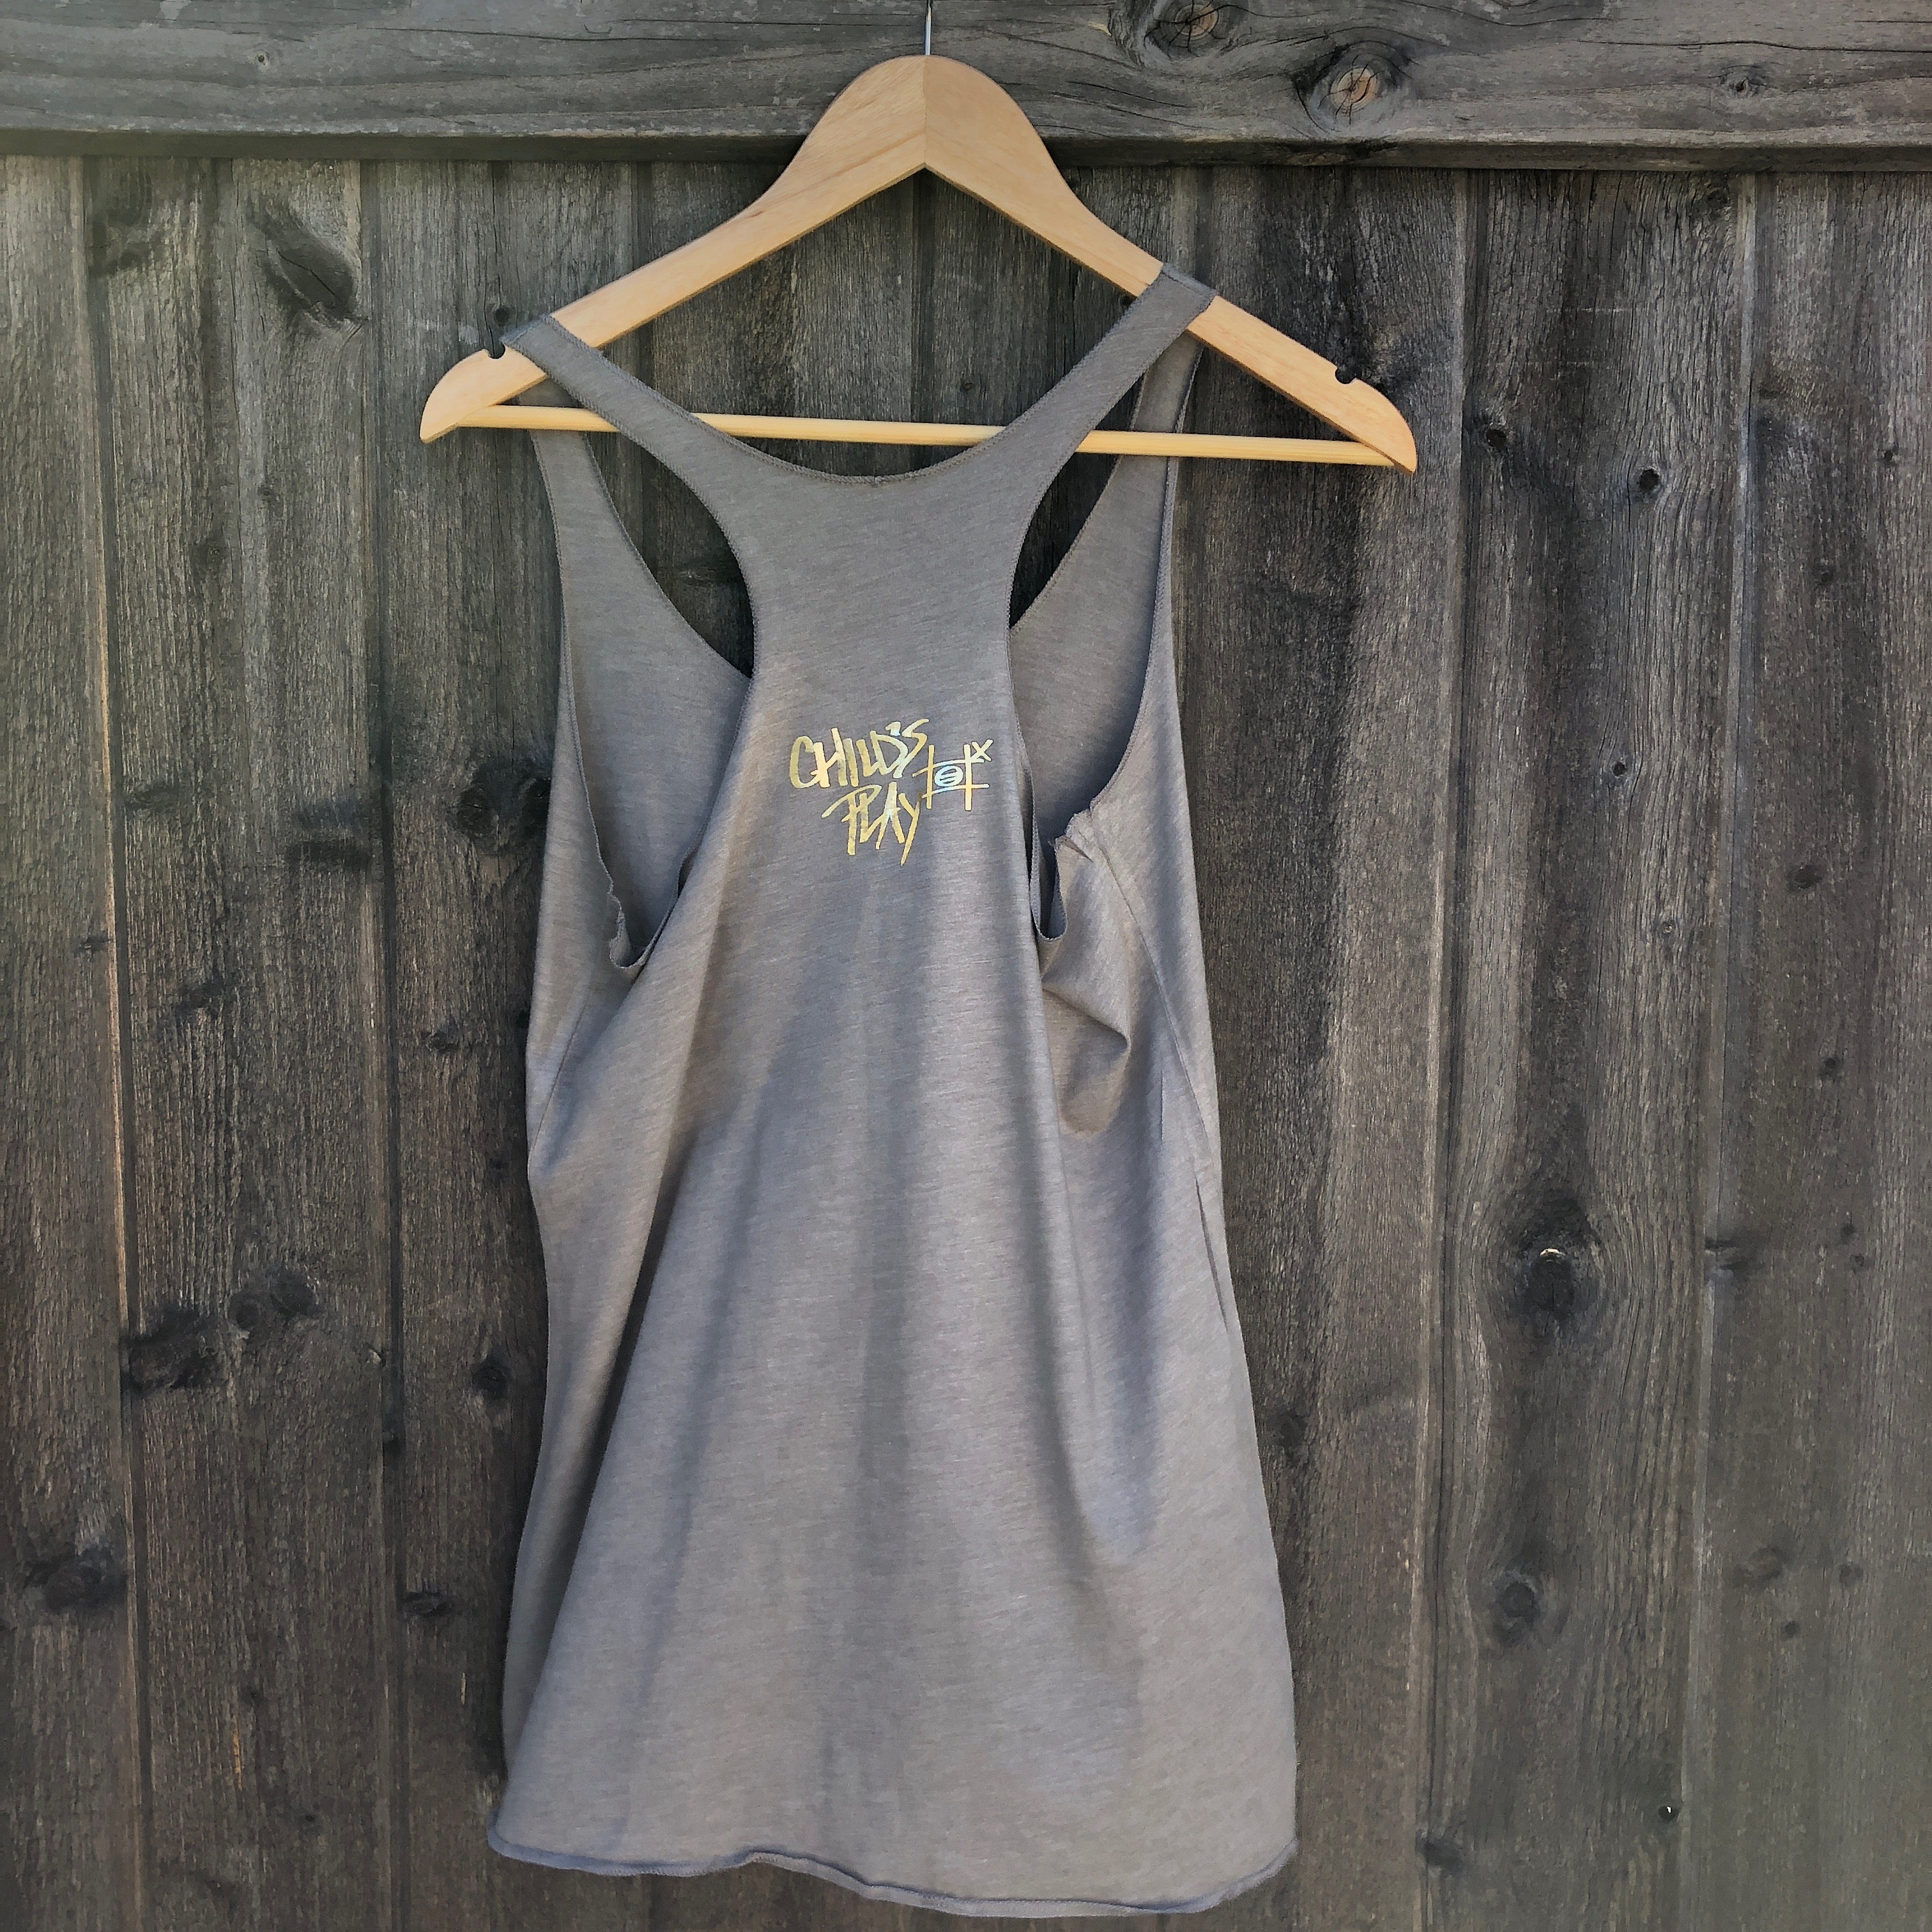 East of Eli Women's Child's Play Olive Foiled Tank Top